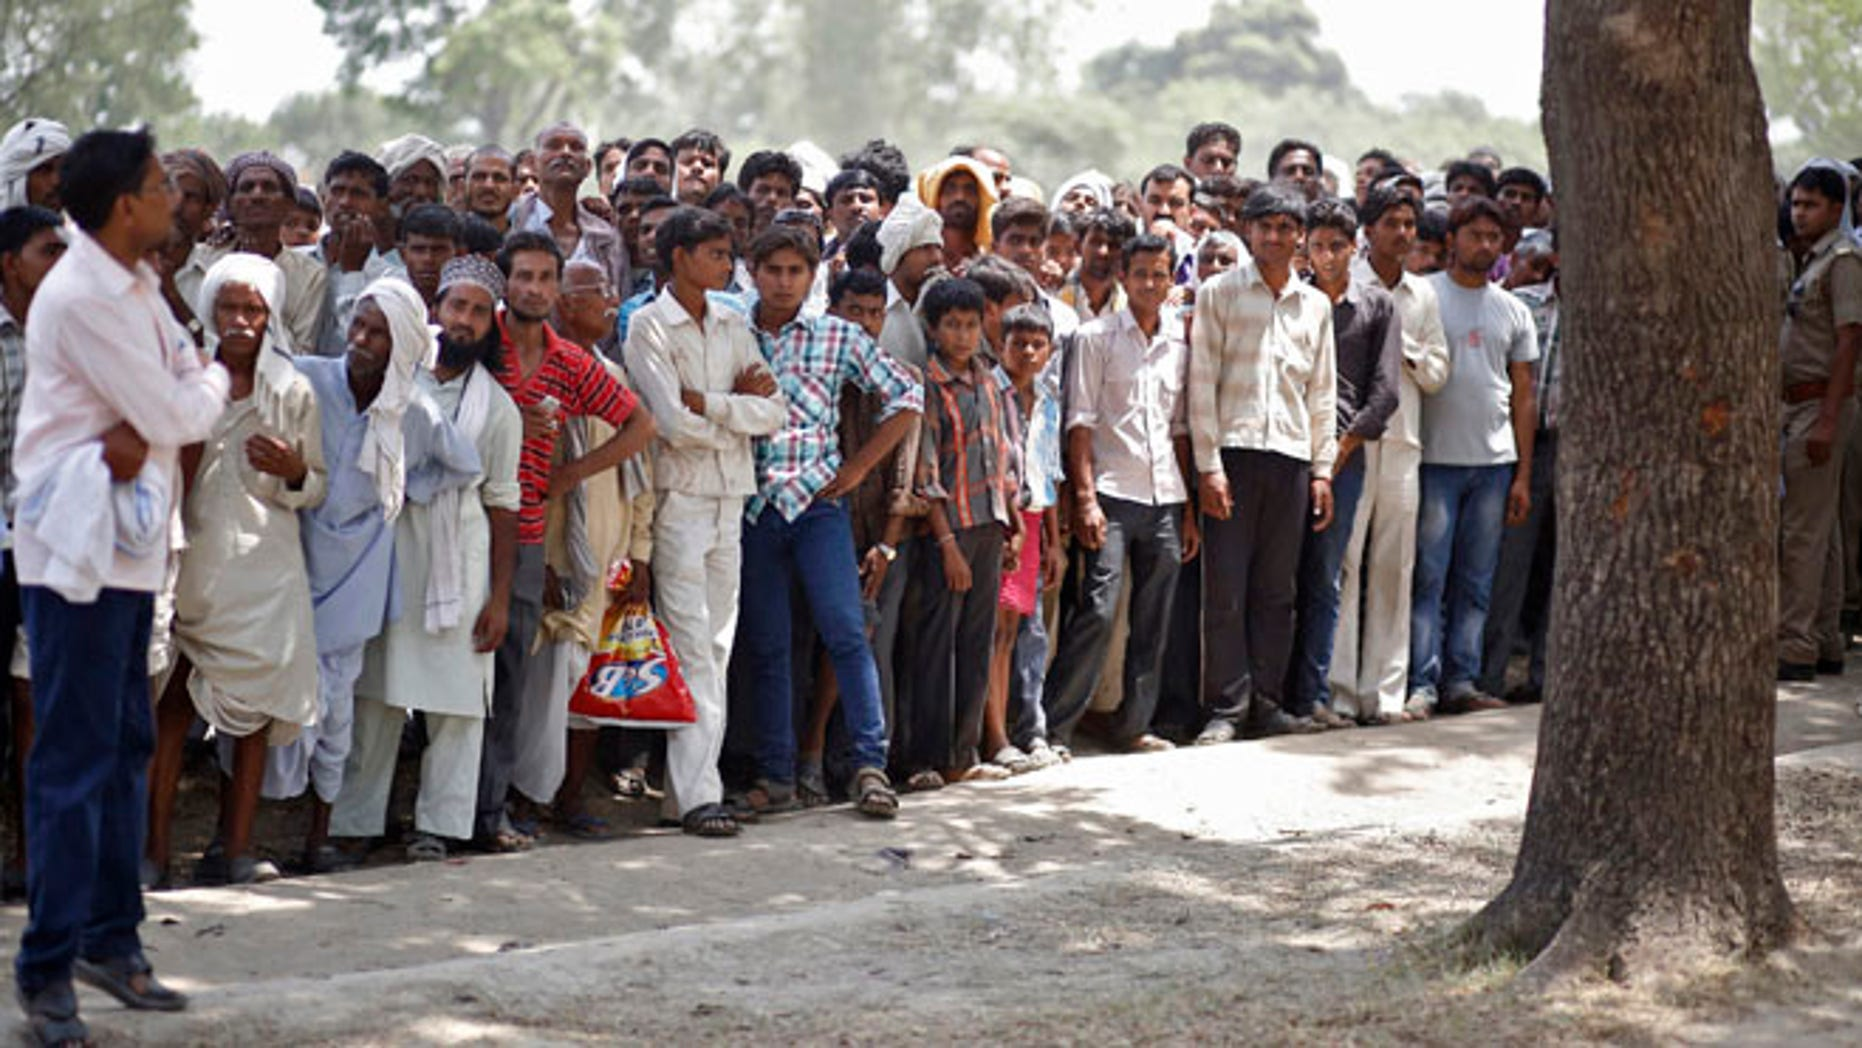 May 31, 2014: Onlookers stand at the site where two teenage girls, who were raped, were hanged from a tree in the northern Indian state of Uttar Pradesh.